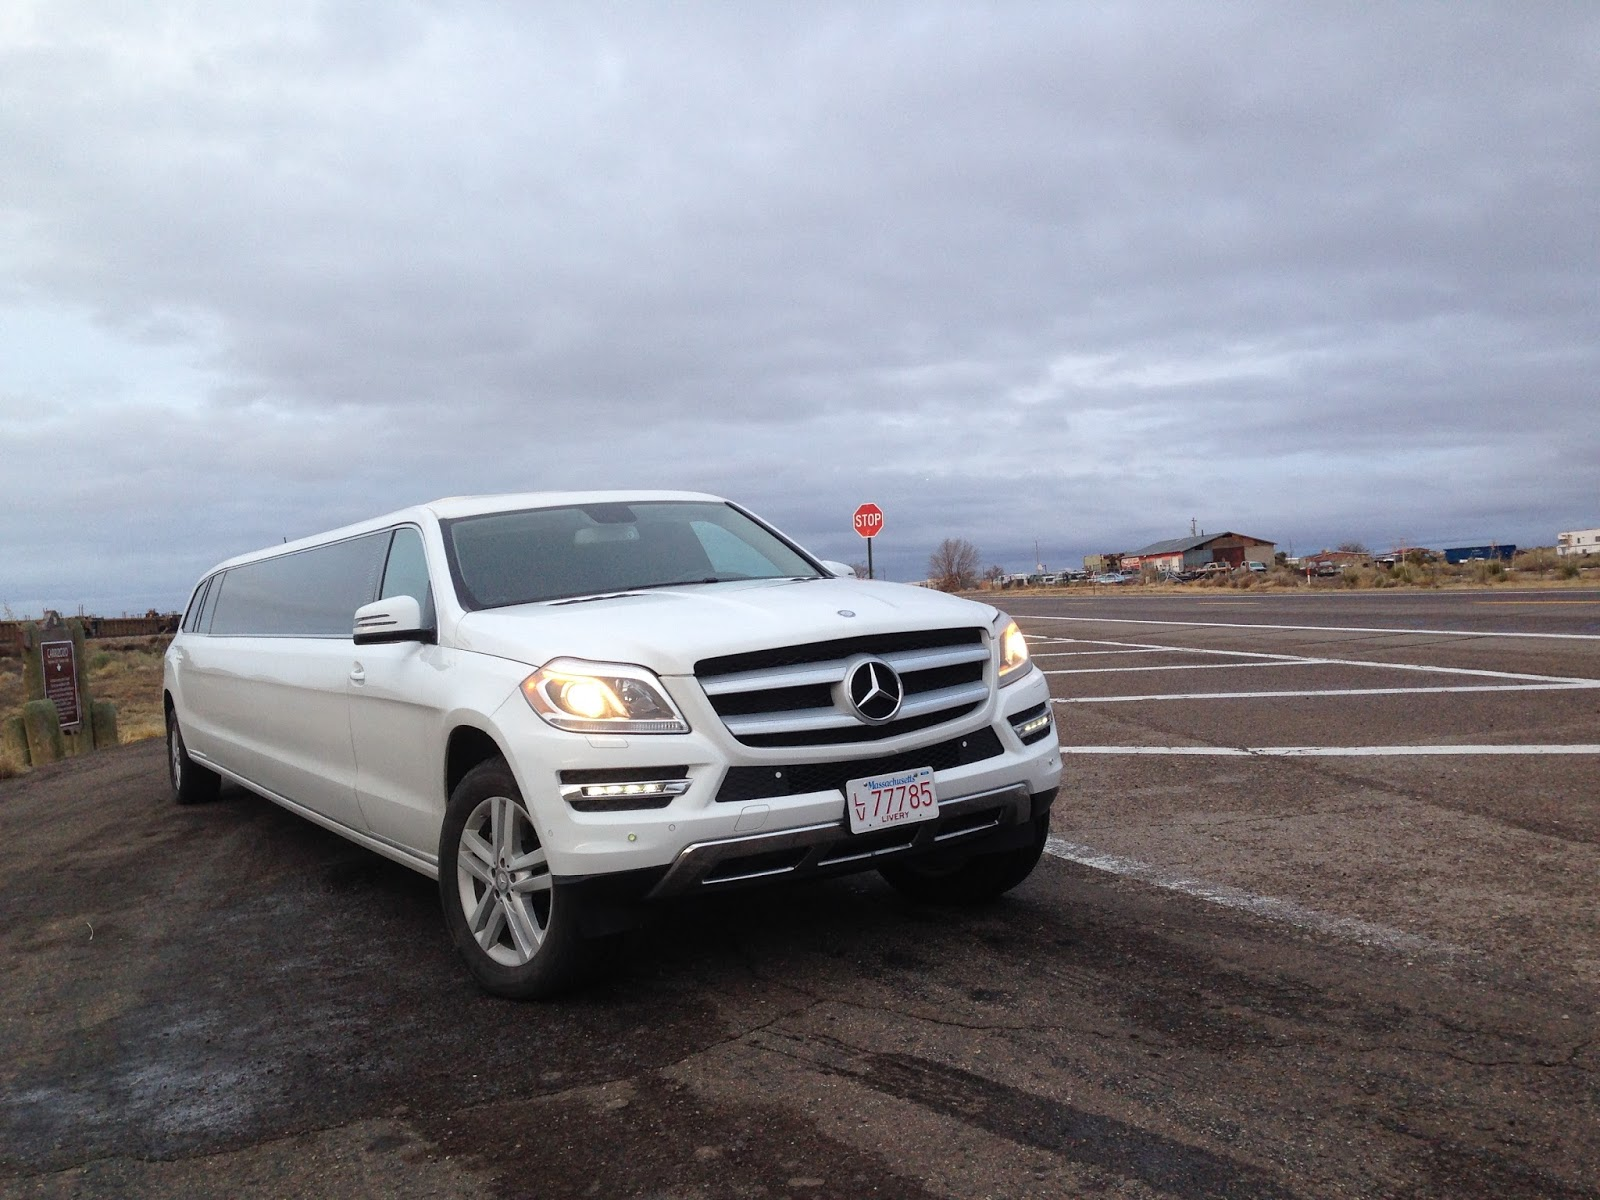 Expo limo introduces new mercedes limousine for Mercedes benz limo